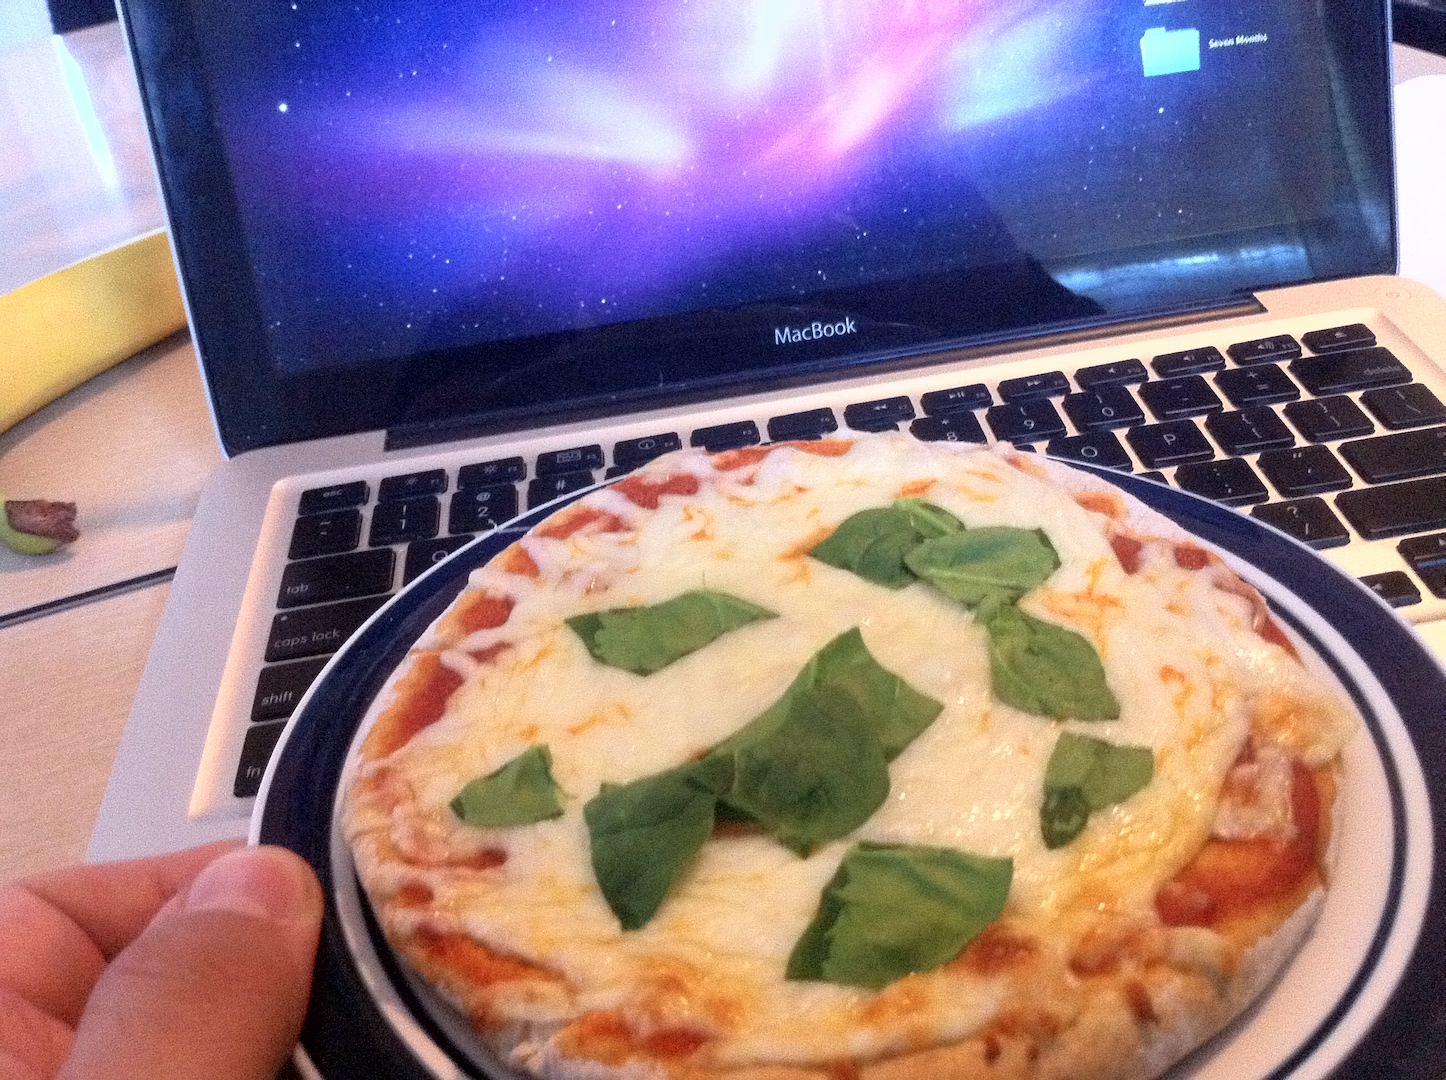 Pizza and macbook